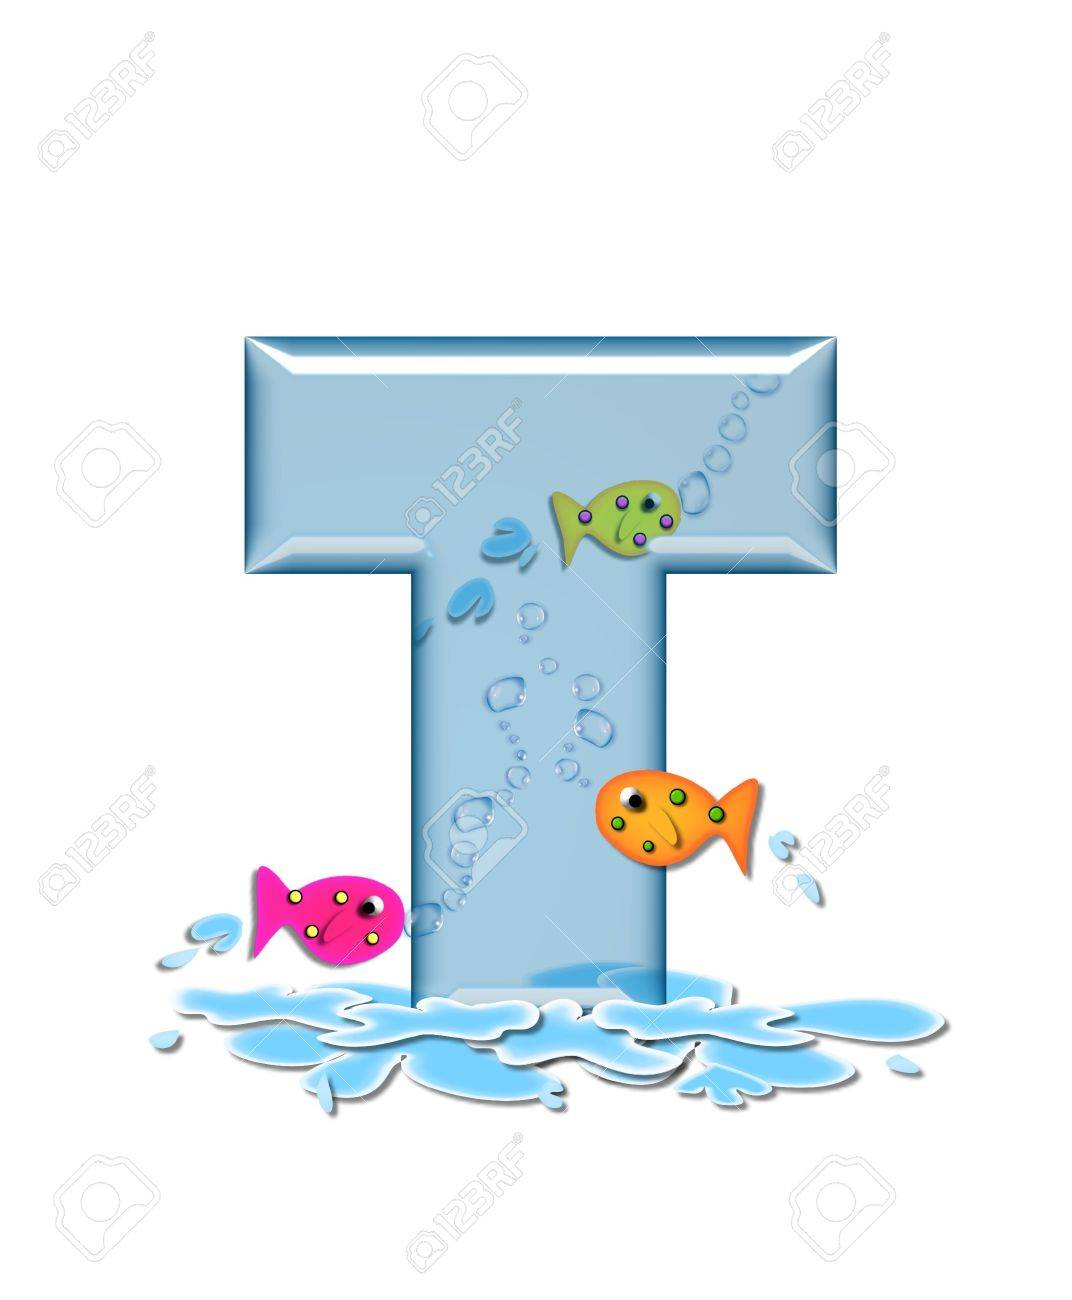 stock photo the letter t in the alphabet set fish flop is aqua in color and transparent you can see fish swimming behind letter and in front